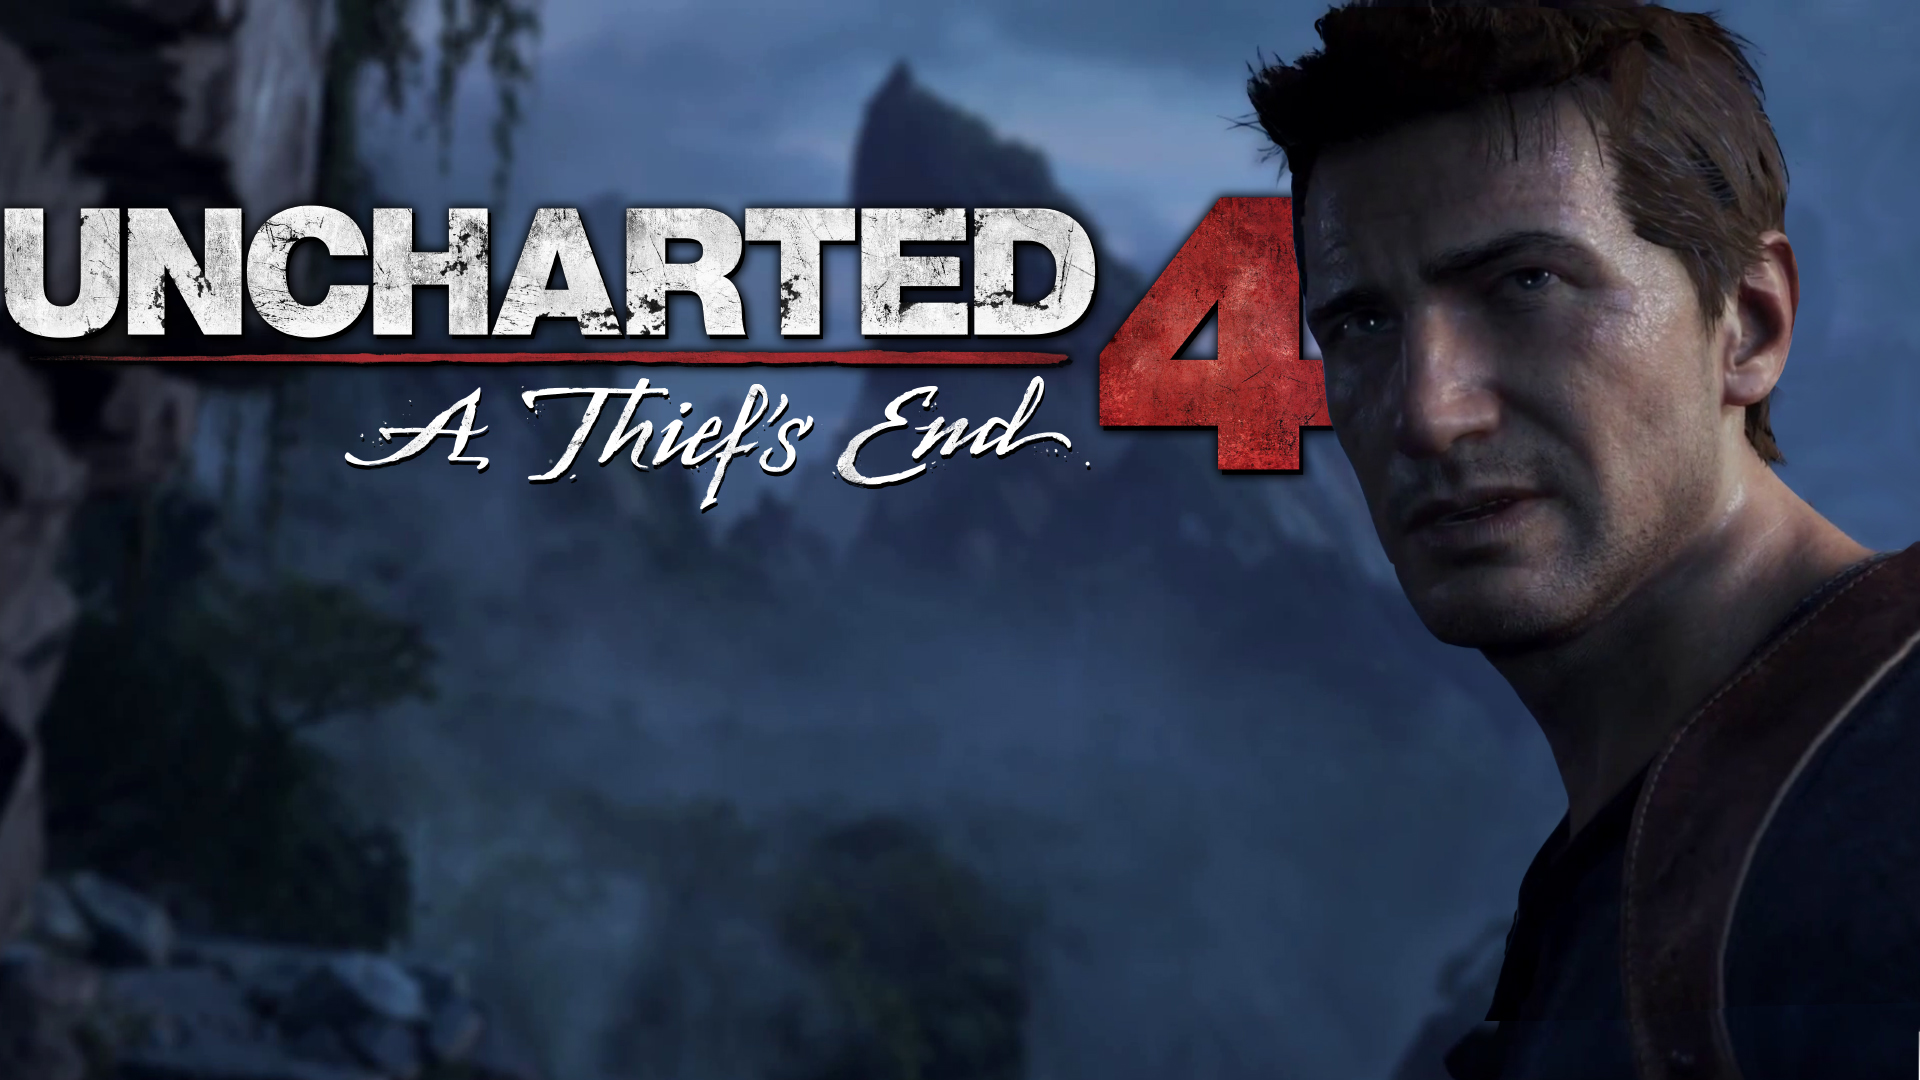 Uncharted 4 A Thief S End Wallpaper By Krehani29 On Deviantart